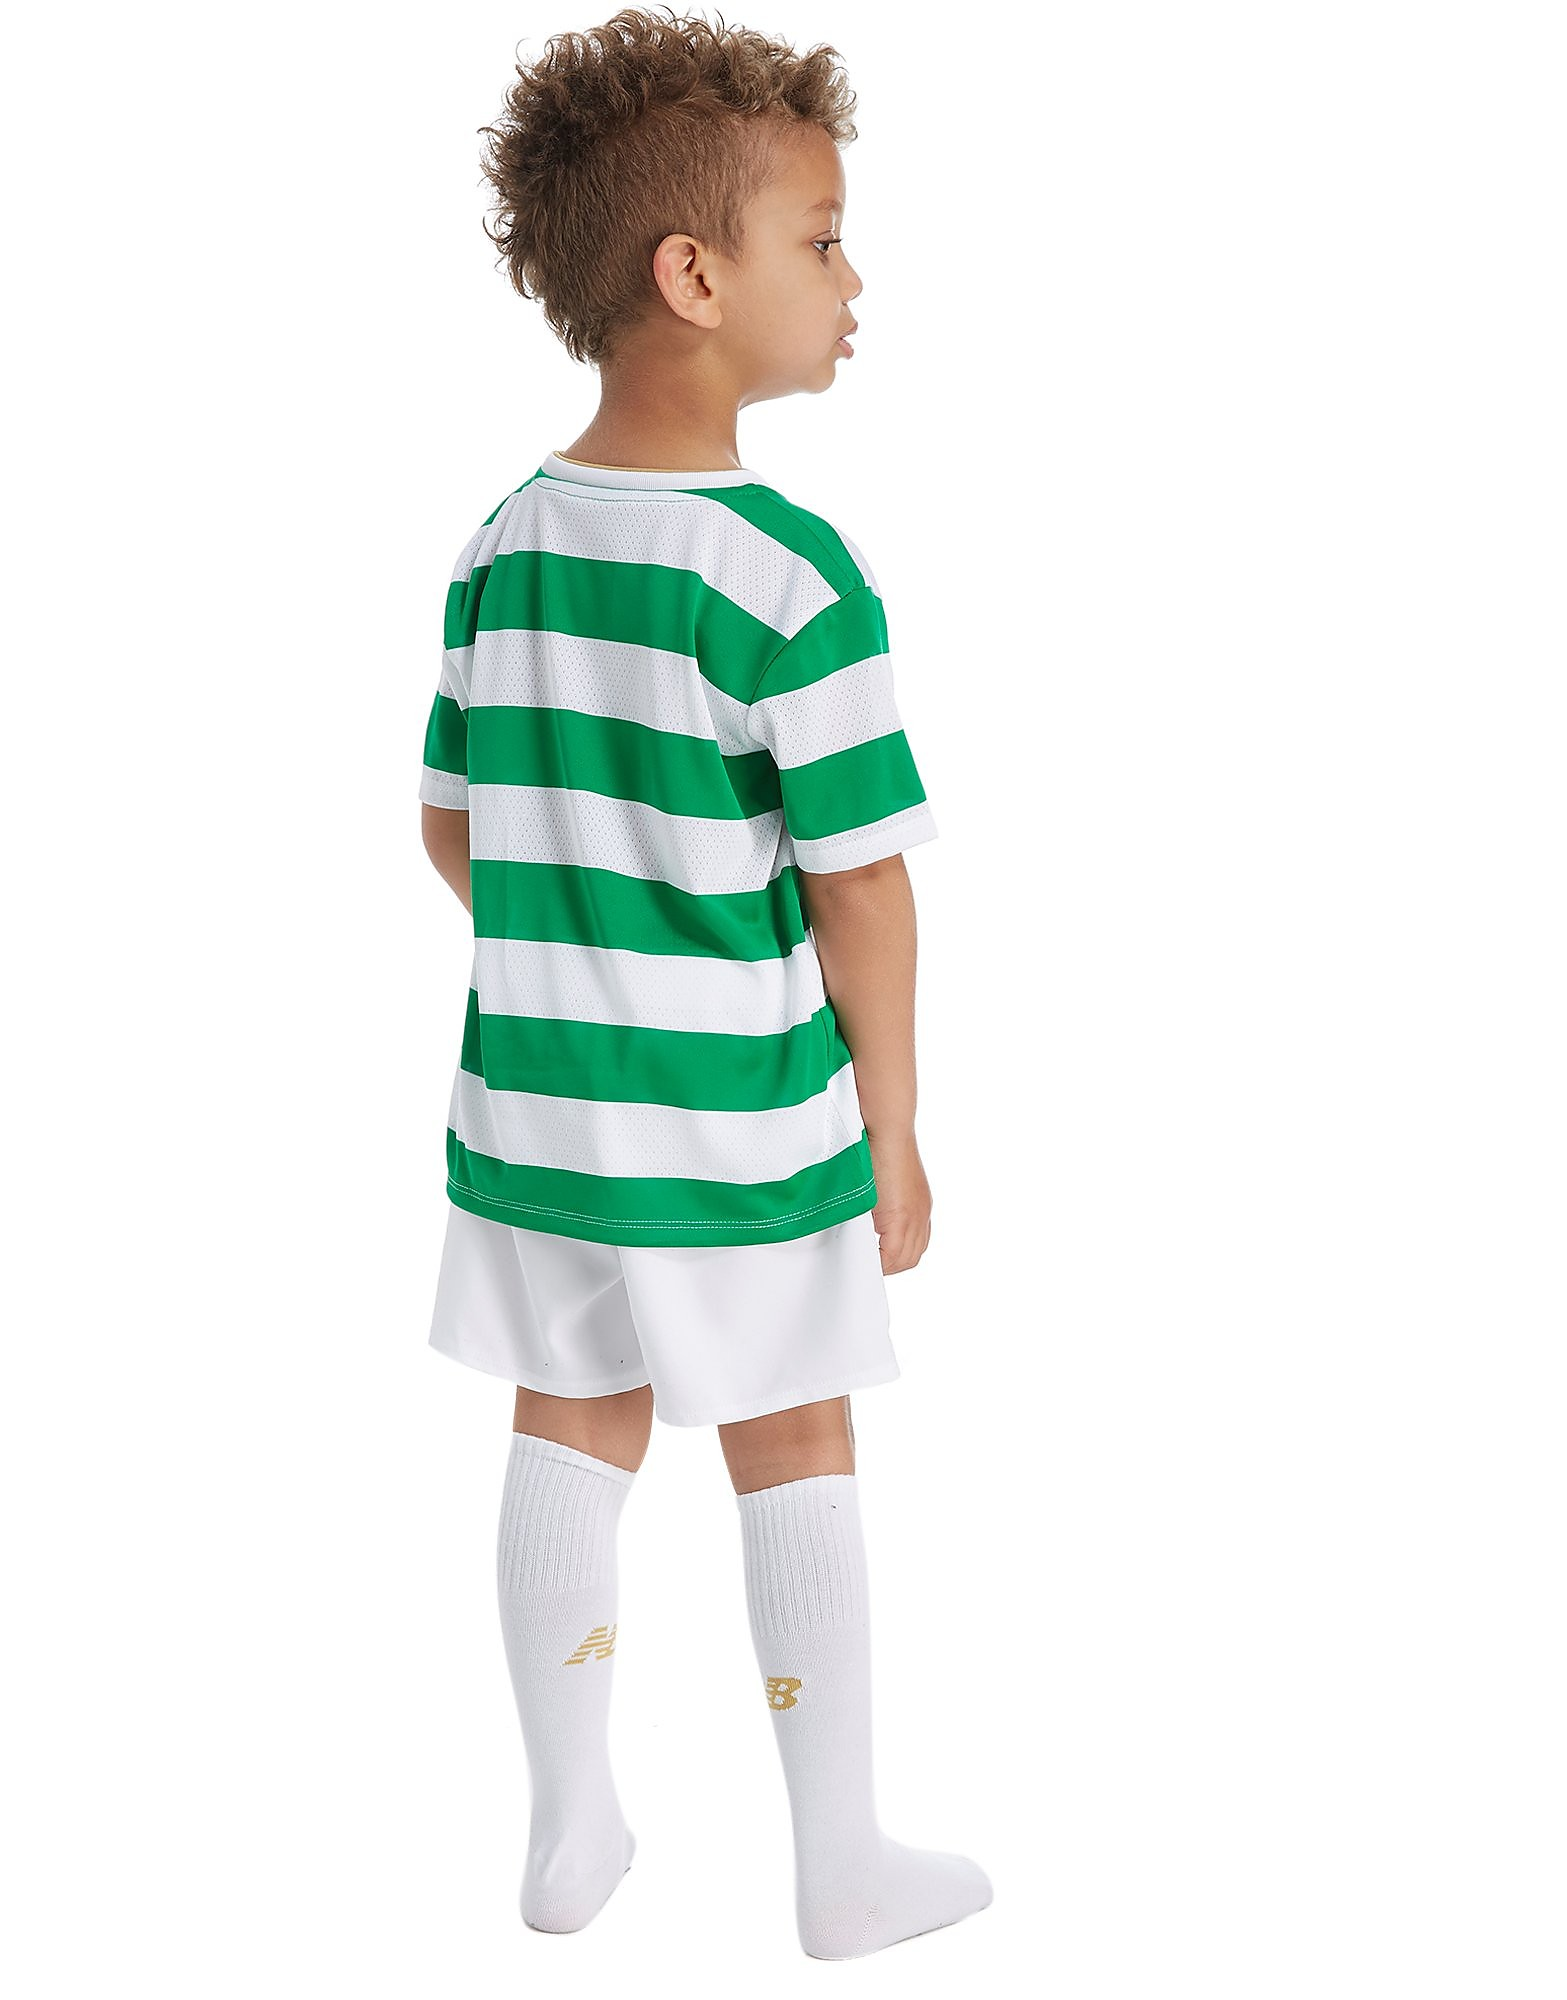 New Balance Celtic FC 2017/18 Home Kit Children